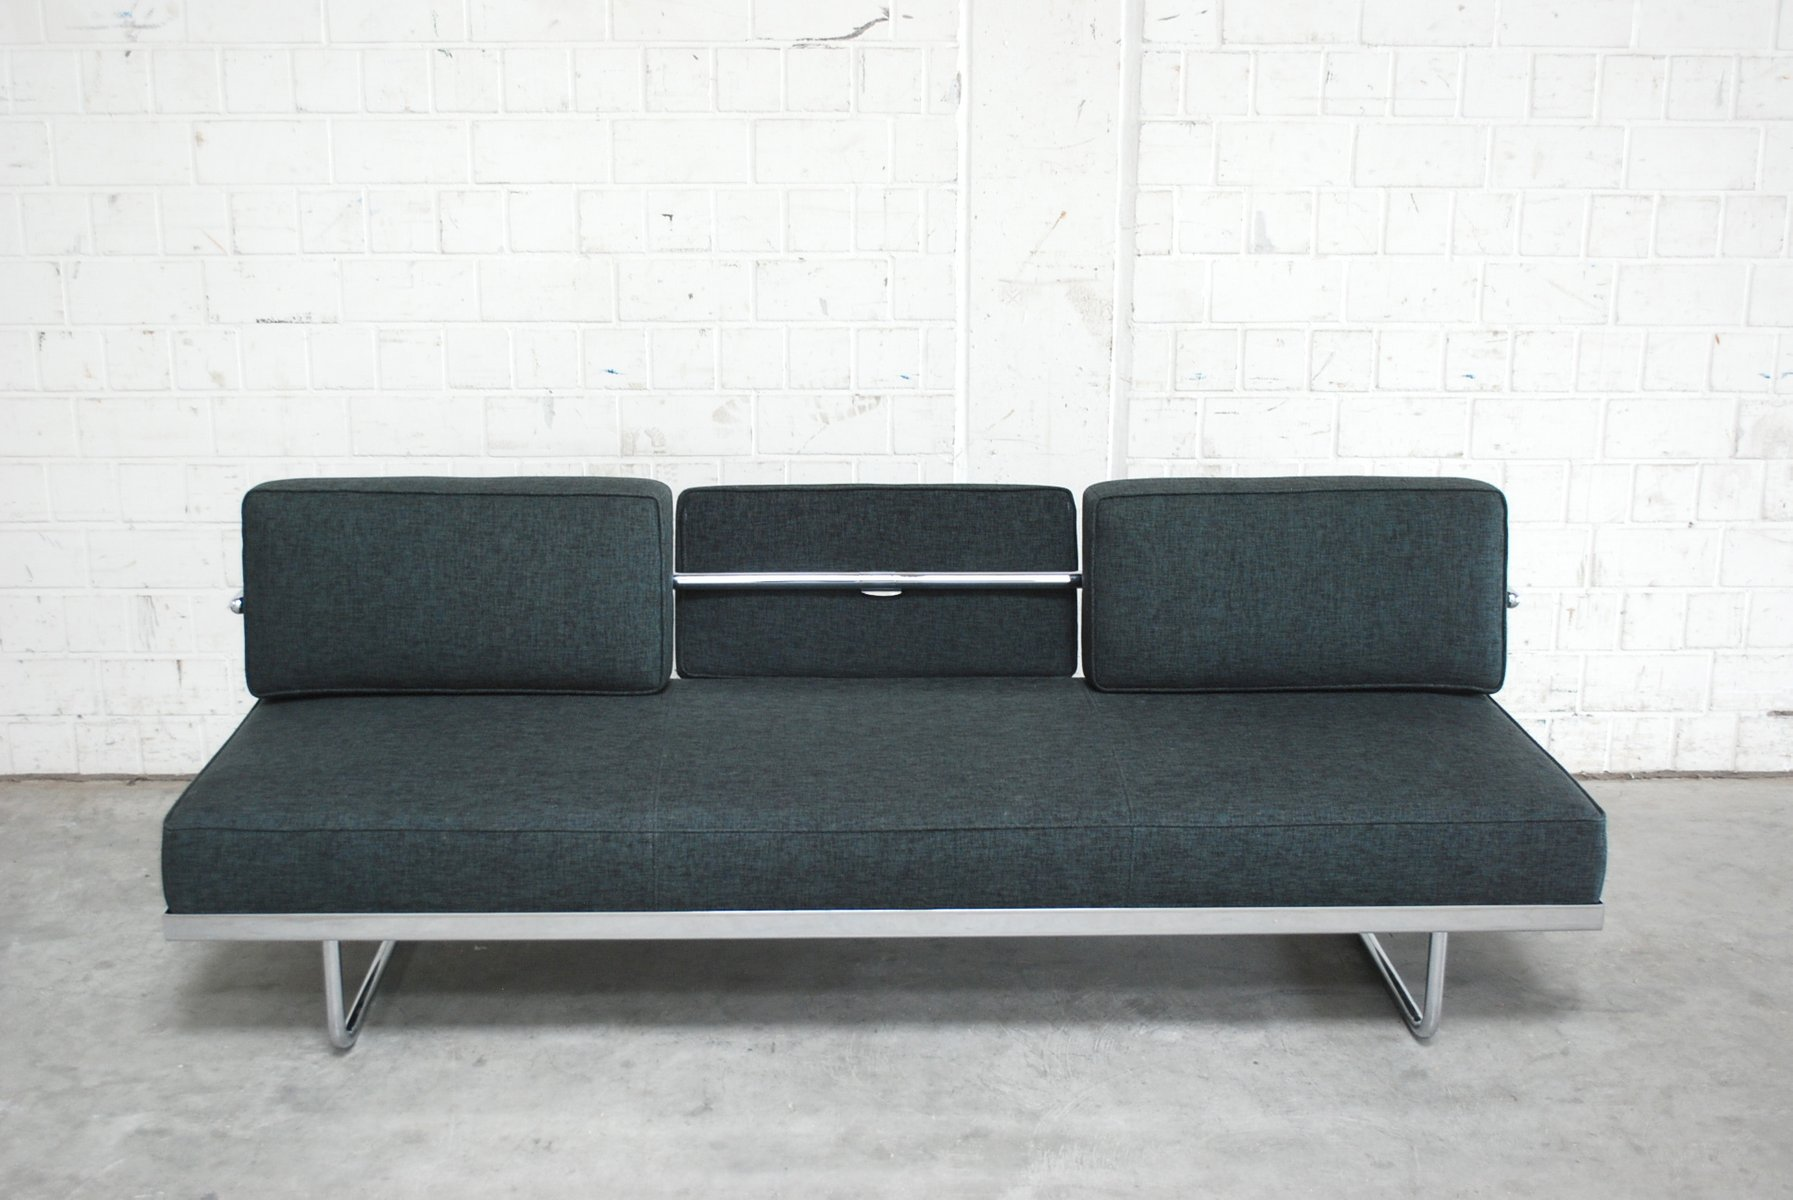 Vintage LC5. F Daybed by Le Corbusier for Cassina for sale at Pamono